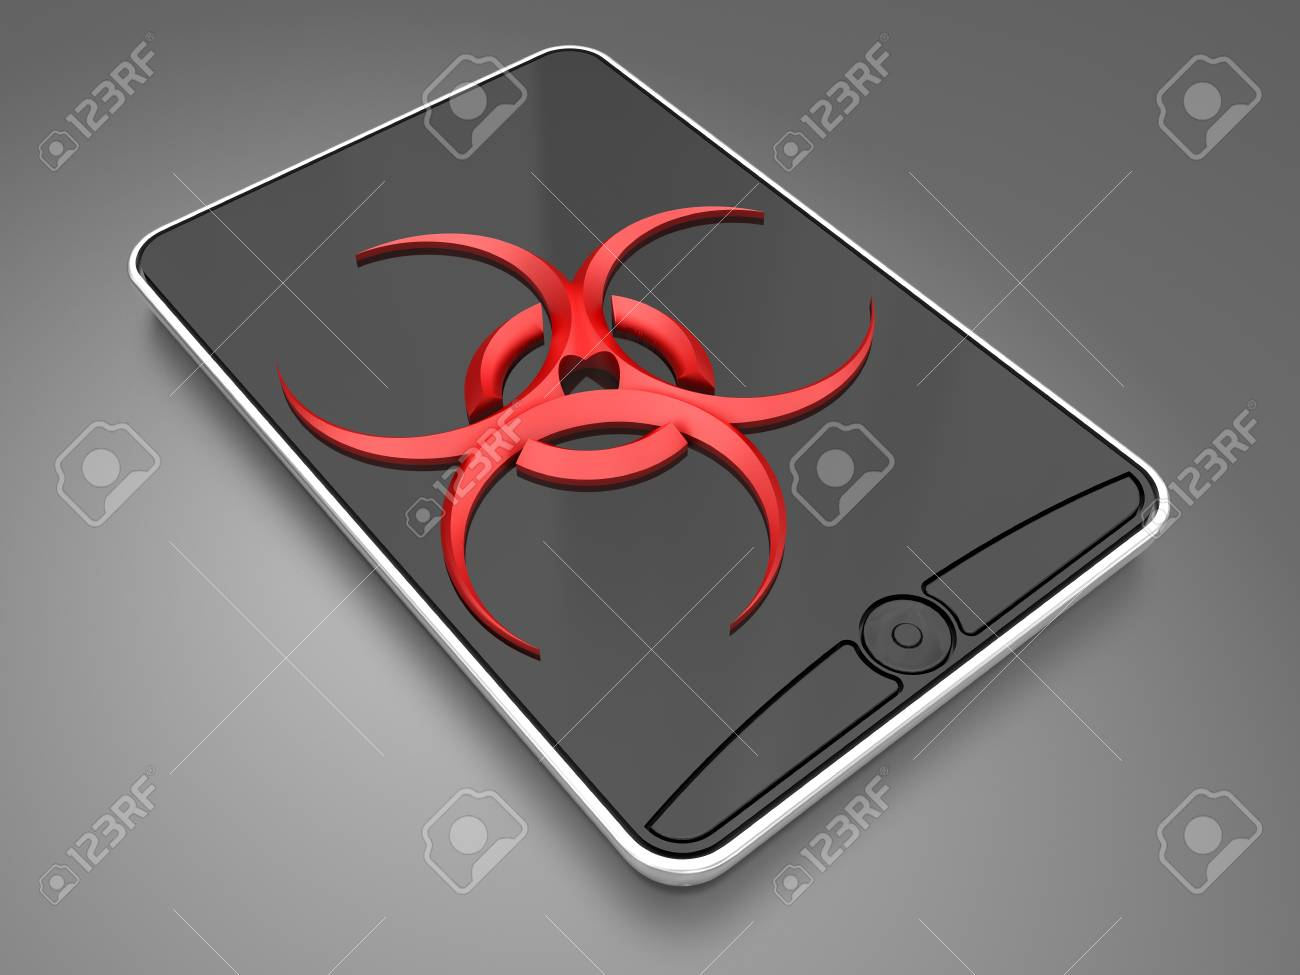 virus in the smartphone Stock Photo - 14996153